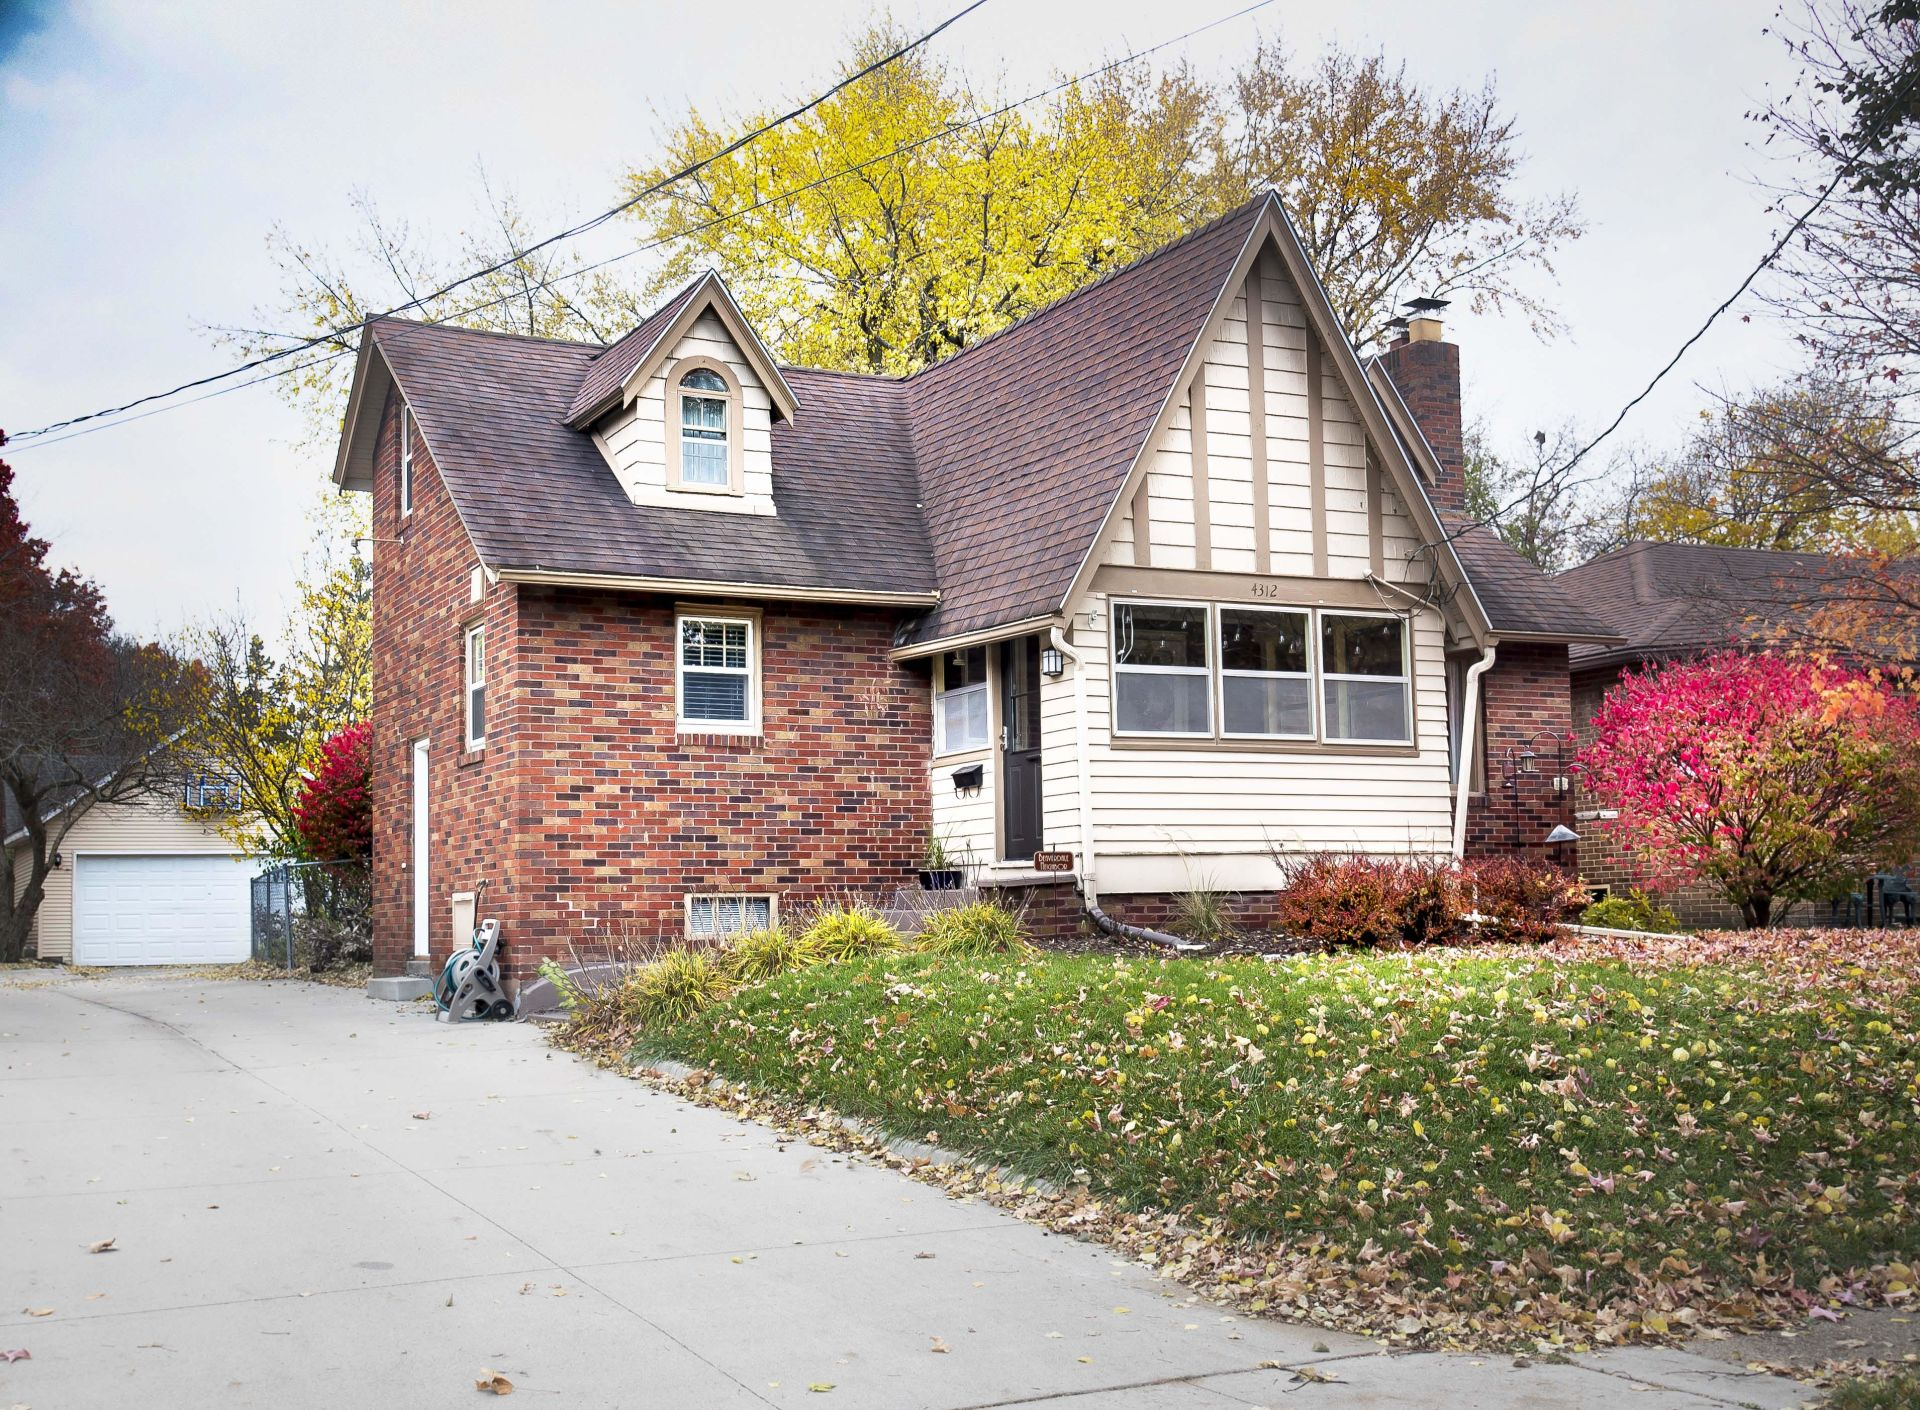 4312 New York Ave., Des Moines 50310